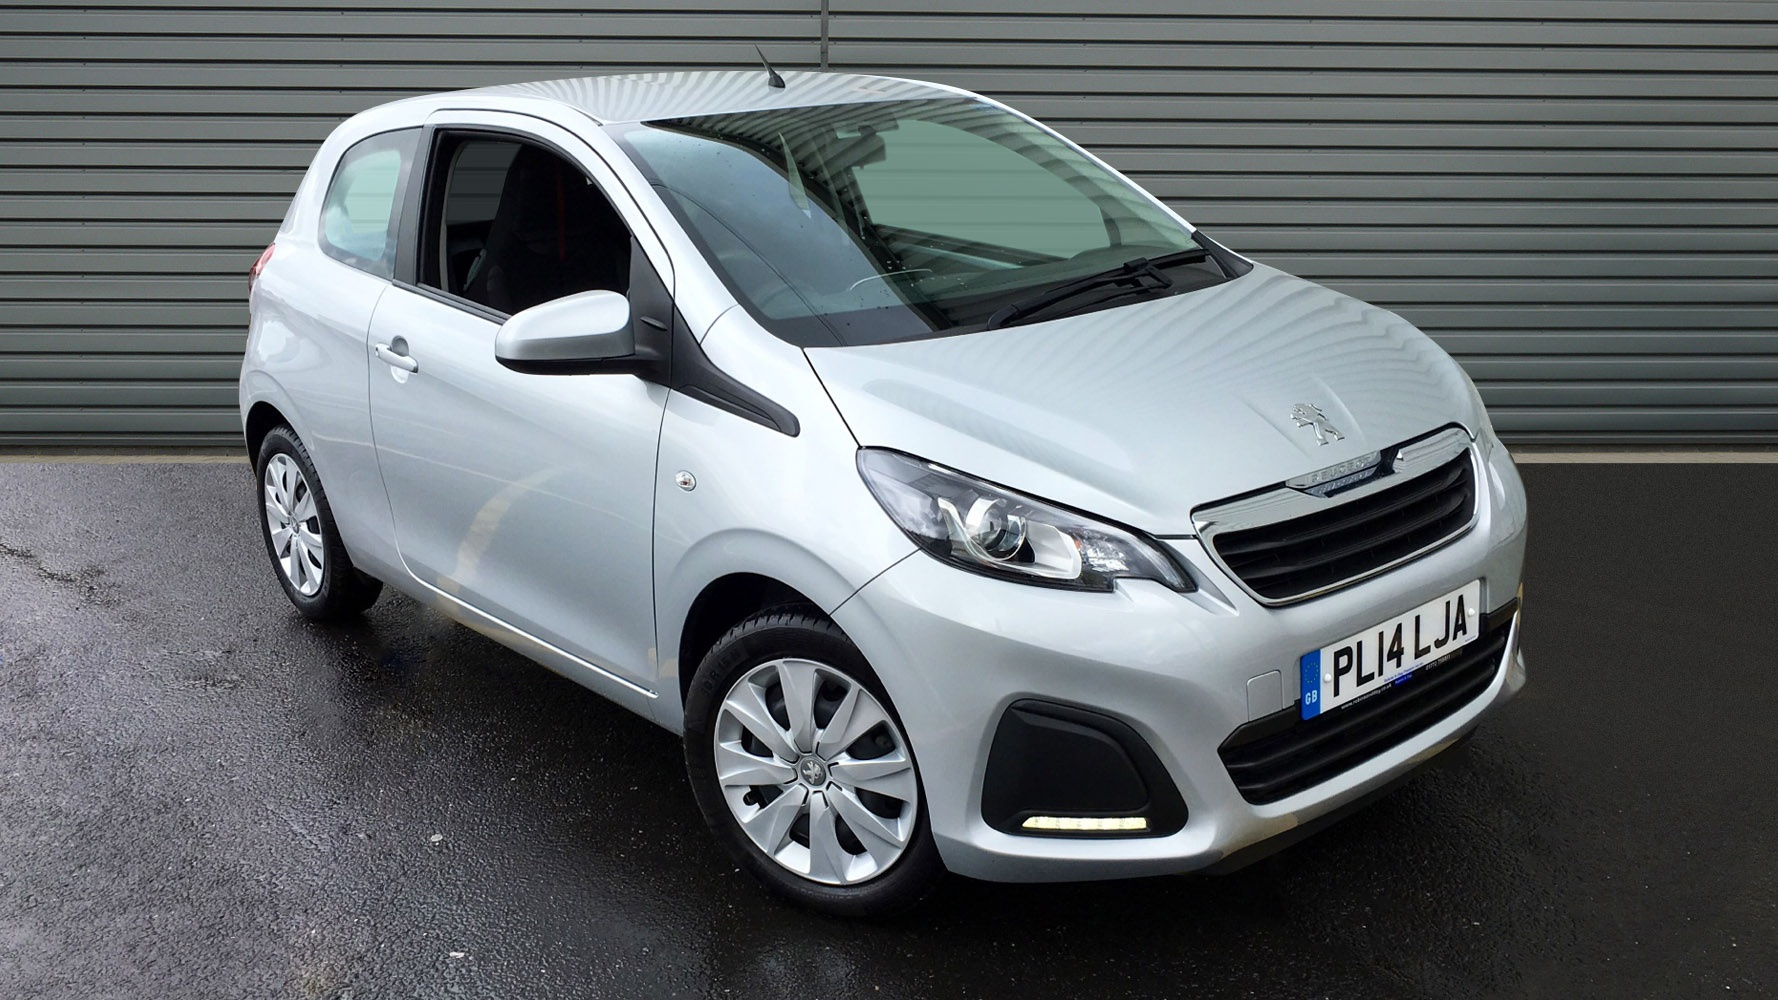 used peugeot 108 hatchback 1 0 active 3dr 2014 pl14lja. Black Bedroom Furniture Sets. Home Design Ideas